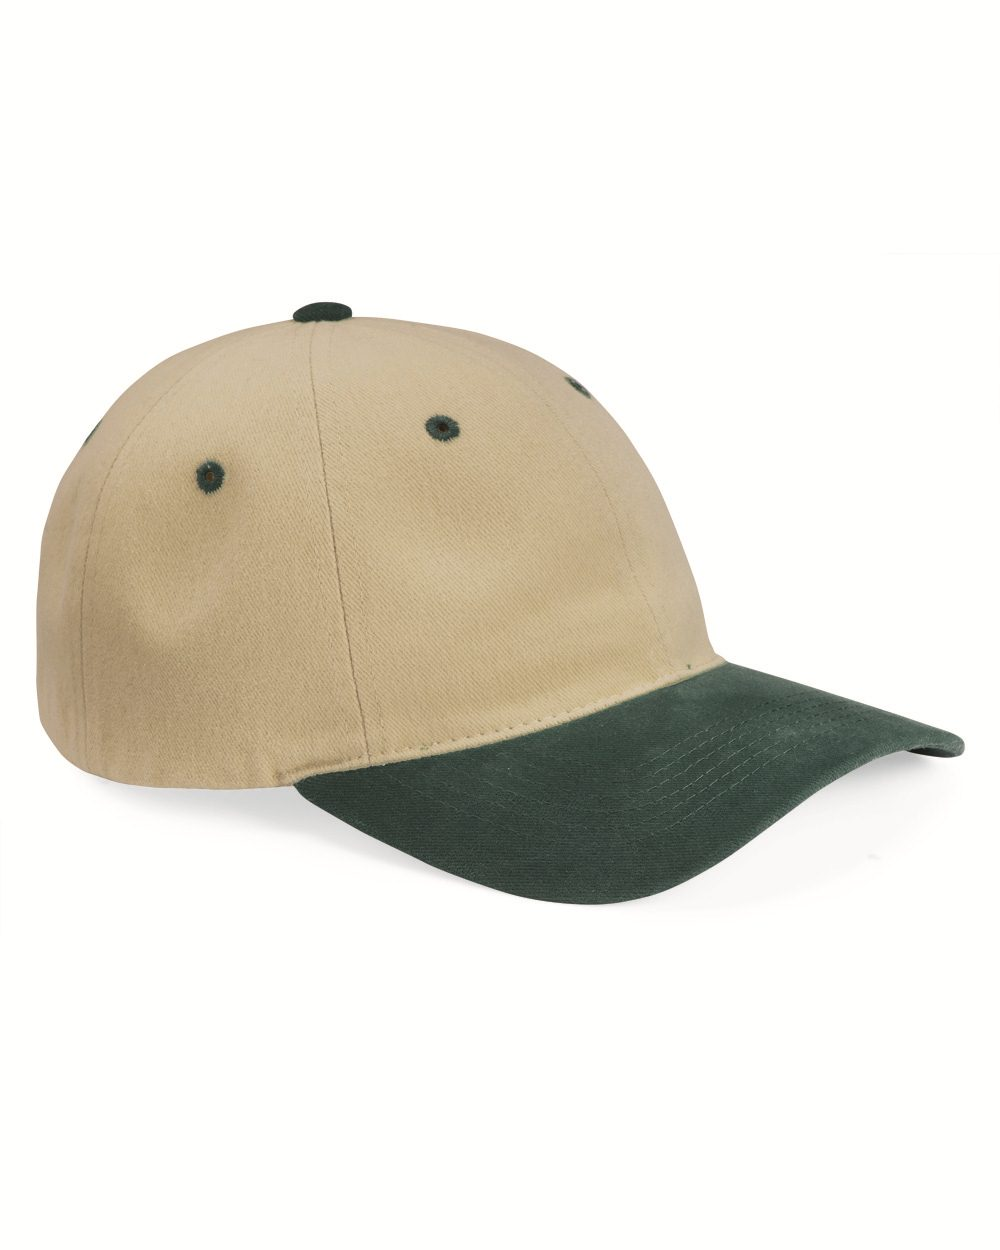 Sportsman Cap 9610 Heavy Brushed Twill Cap